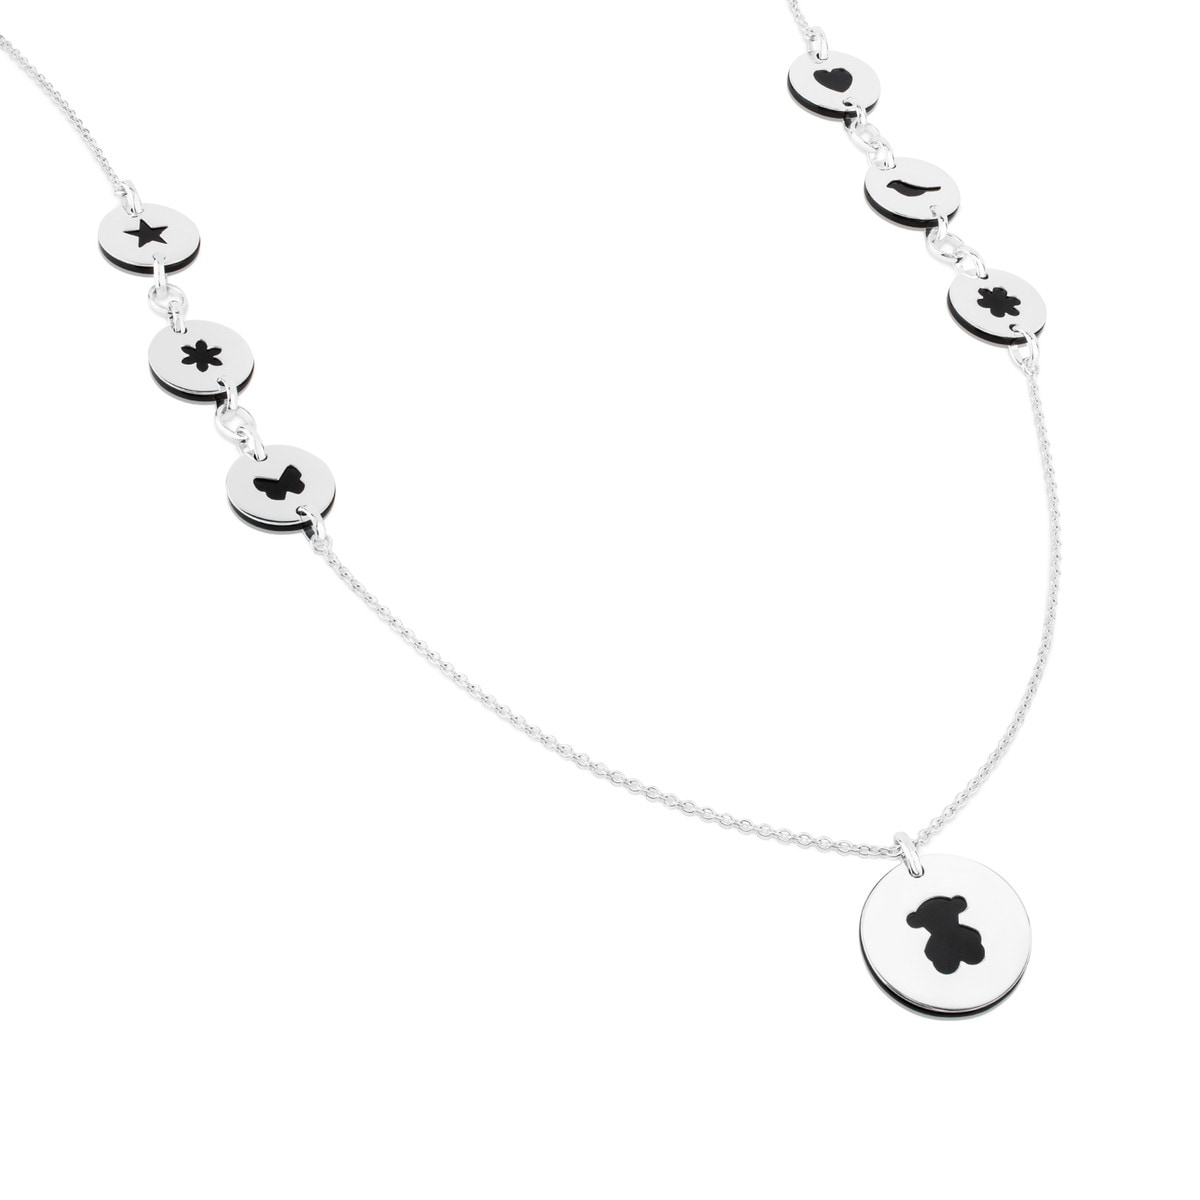 Silver Confeti Necklace with Onyx and Gemstones